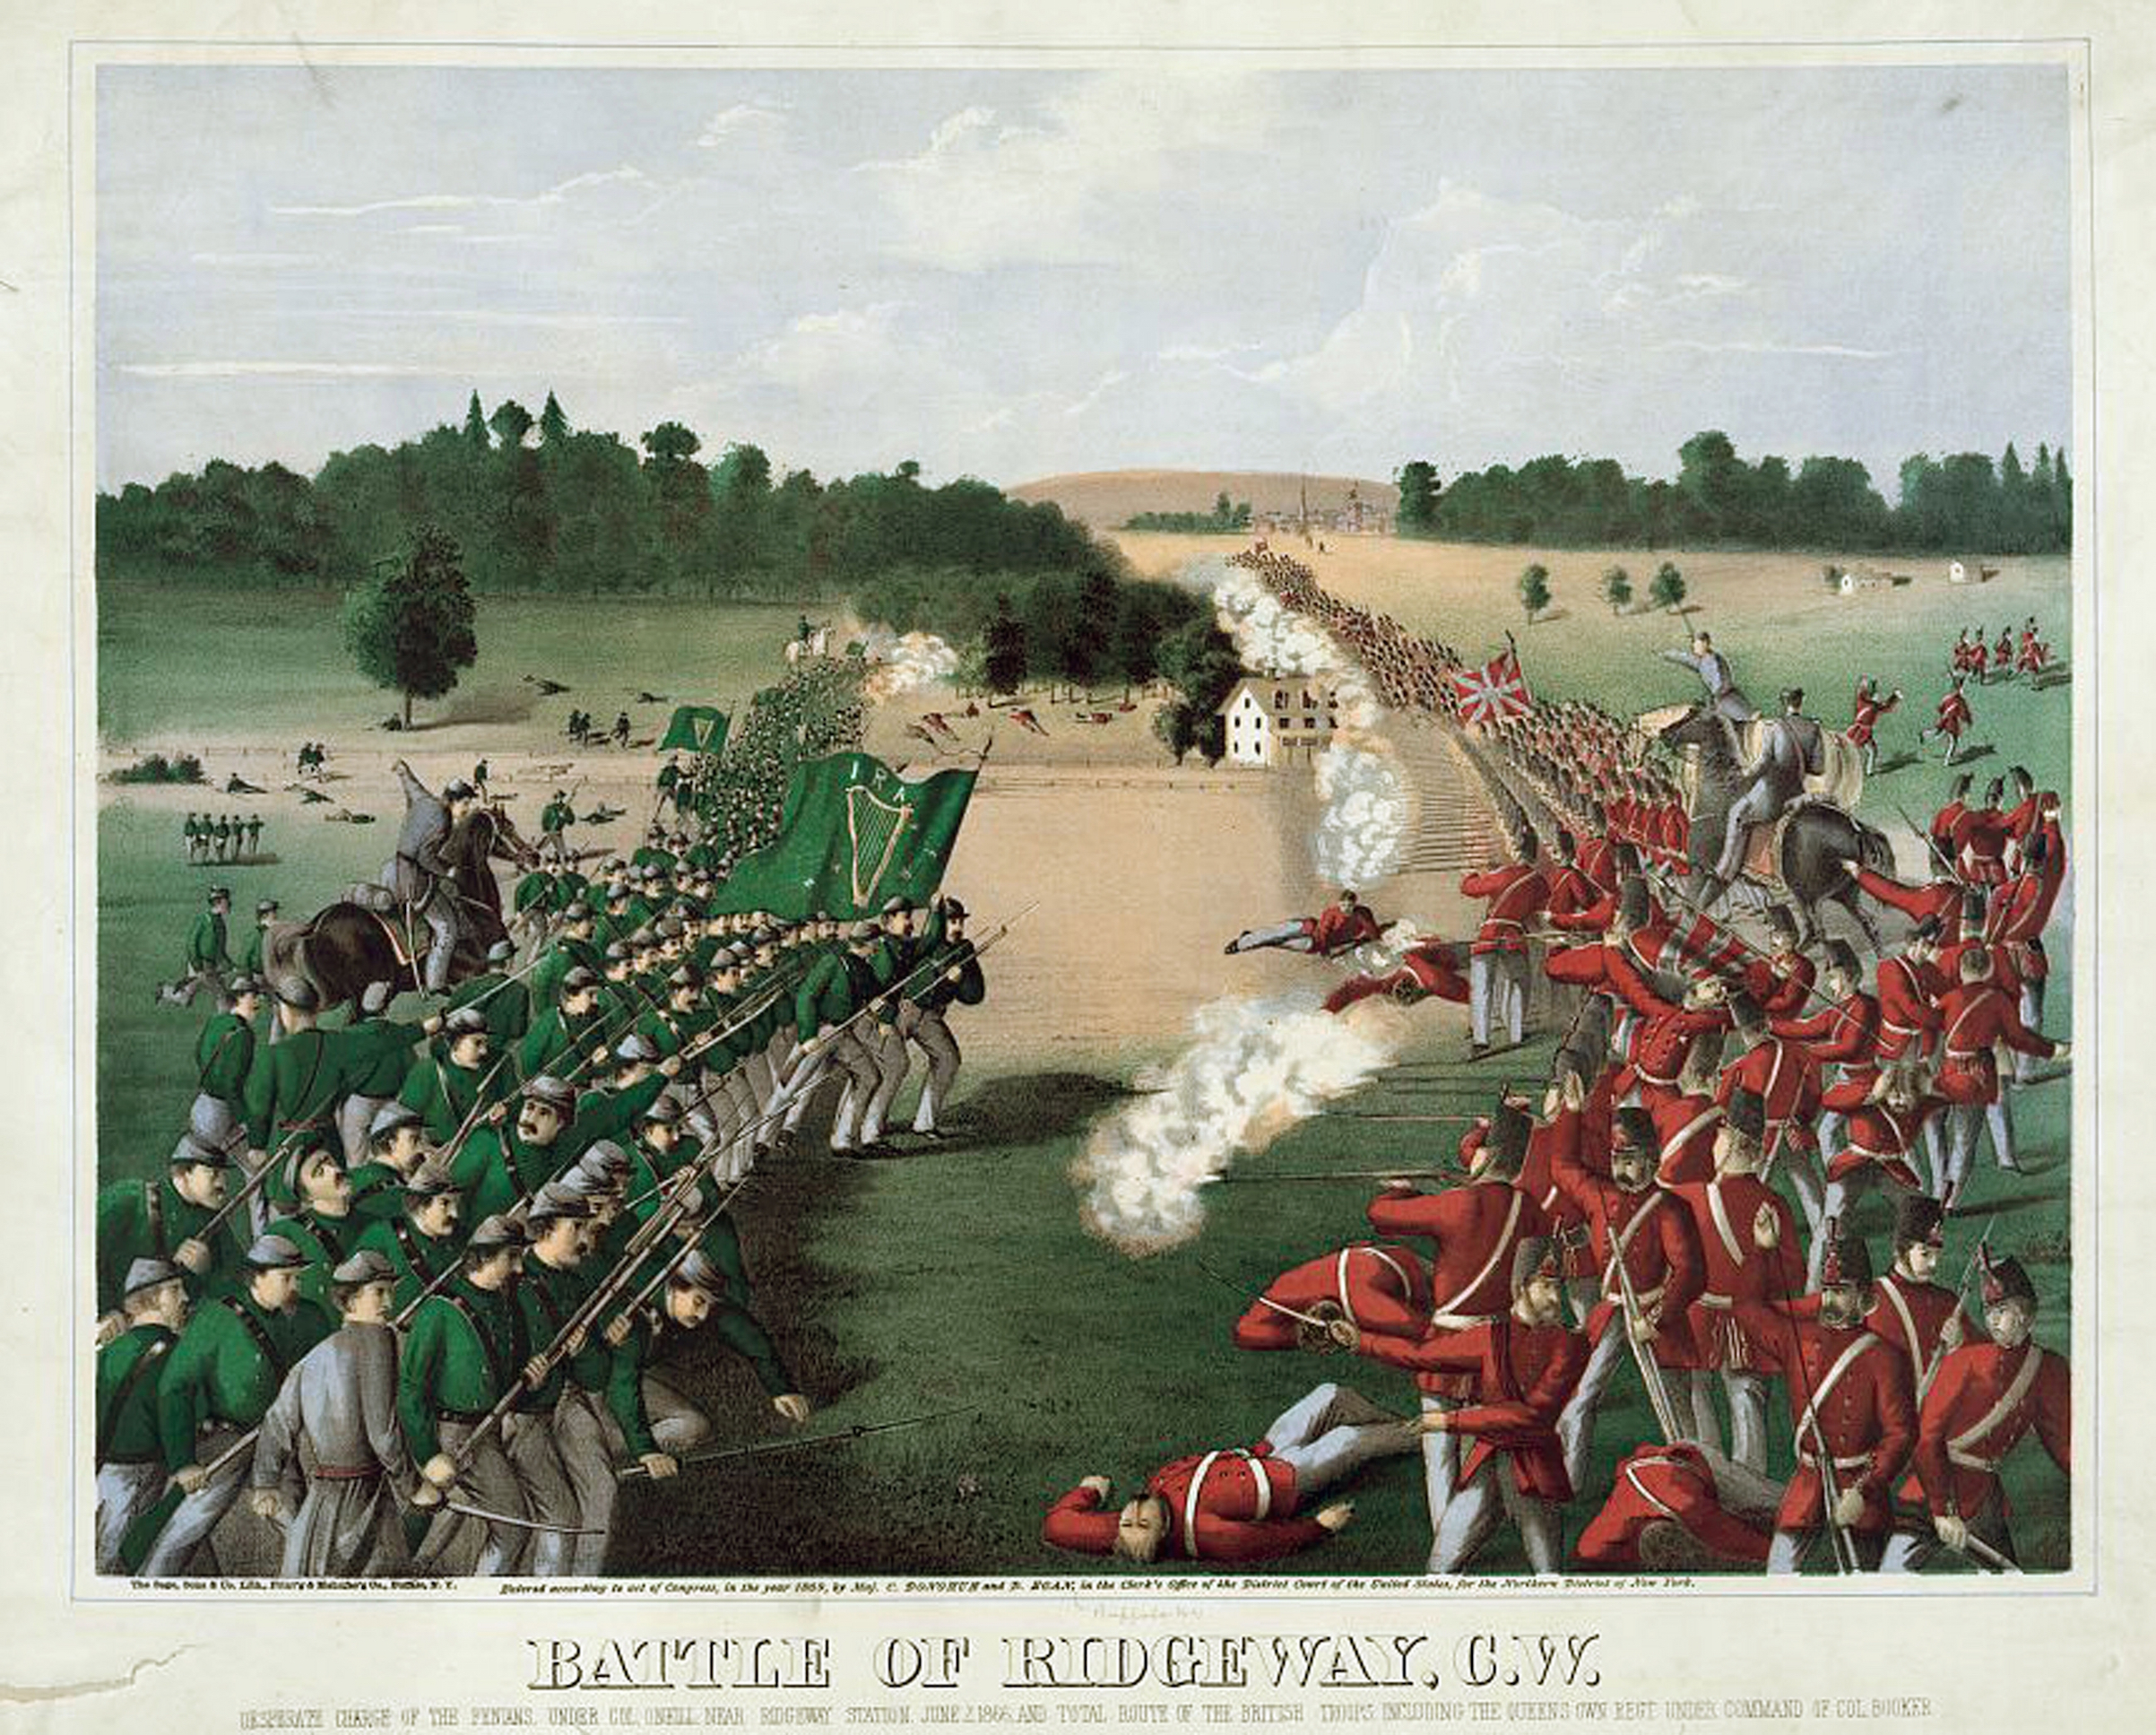 Battle of Ridgeway, Ontario (Canada West), June 2, 1866. Rout of Canadian troops by an irregular Irish-American army, the Fenians, left. Coloured lithograph c1868.